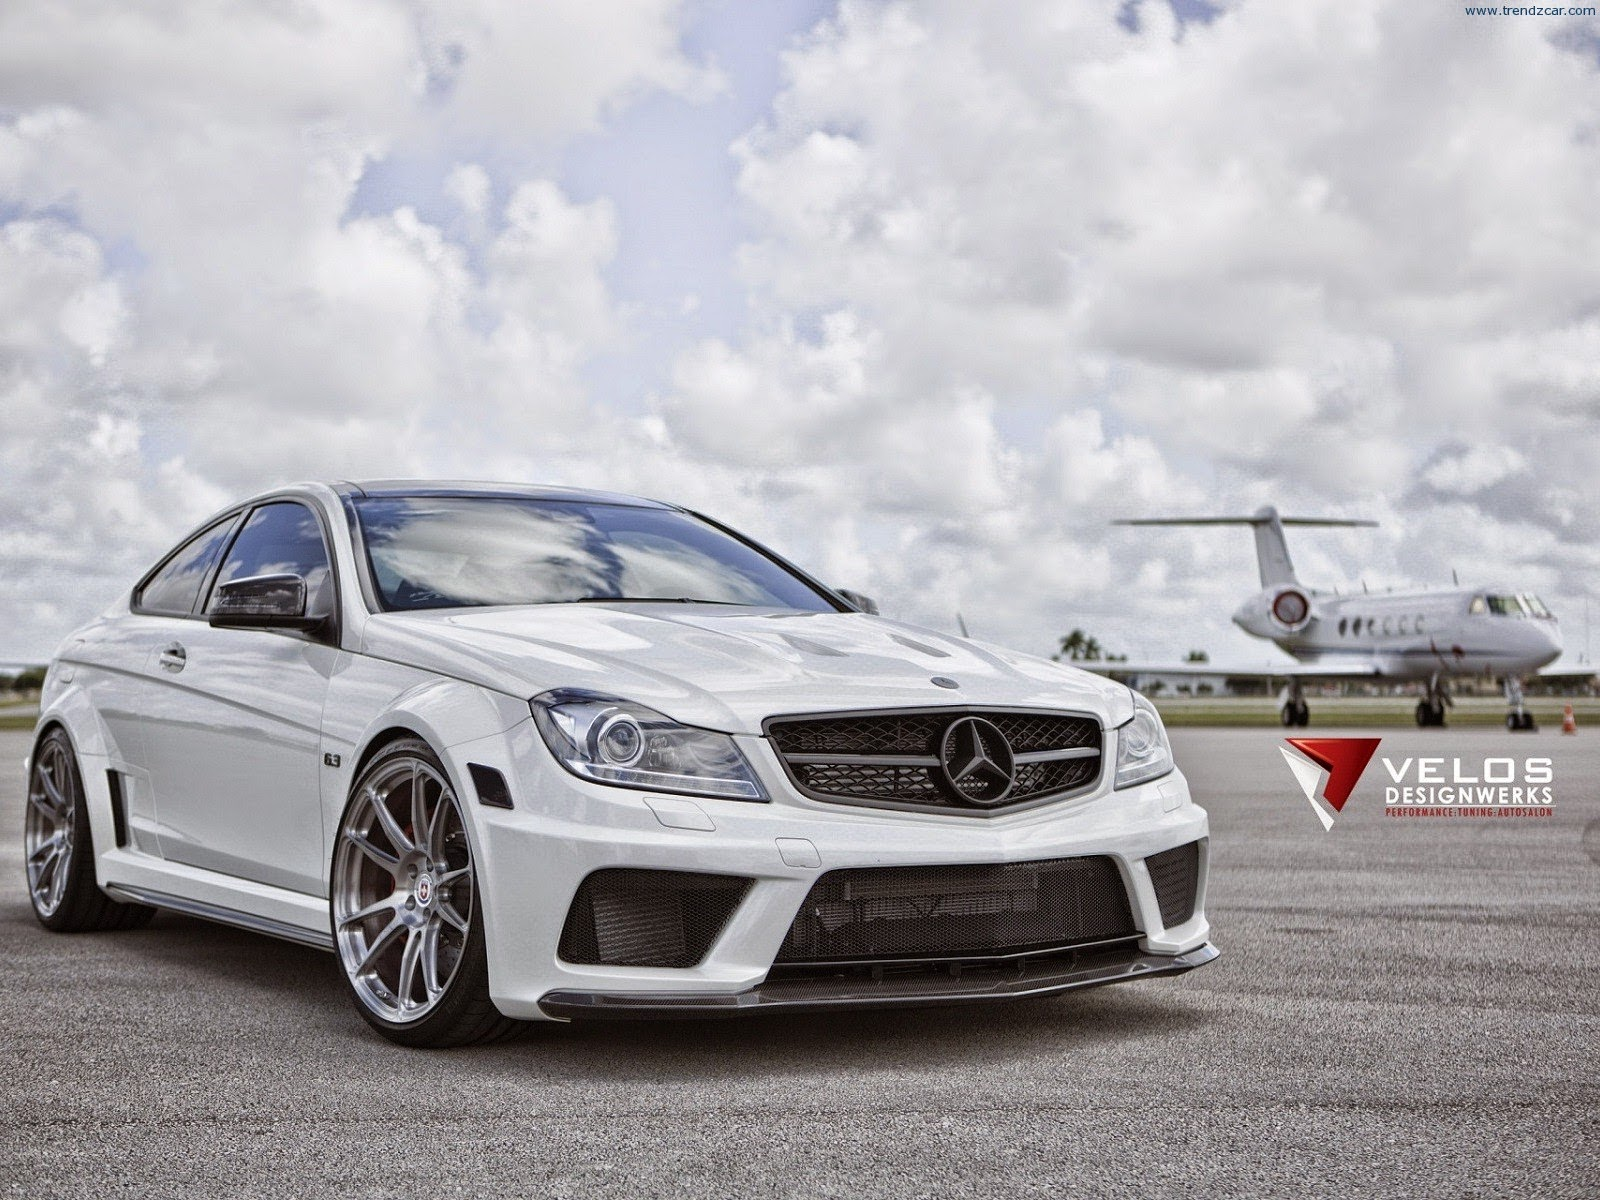 wonderful images of mercedes amg c63 w204 black series bodykit coupe fiat world test drive. Black Bedroom Furniture Sets. Home Design Ideas